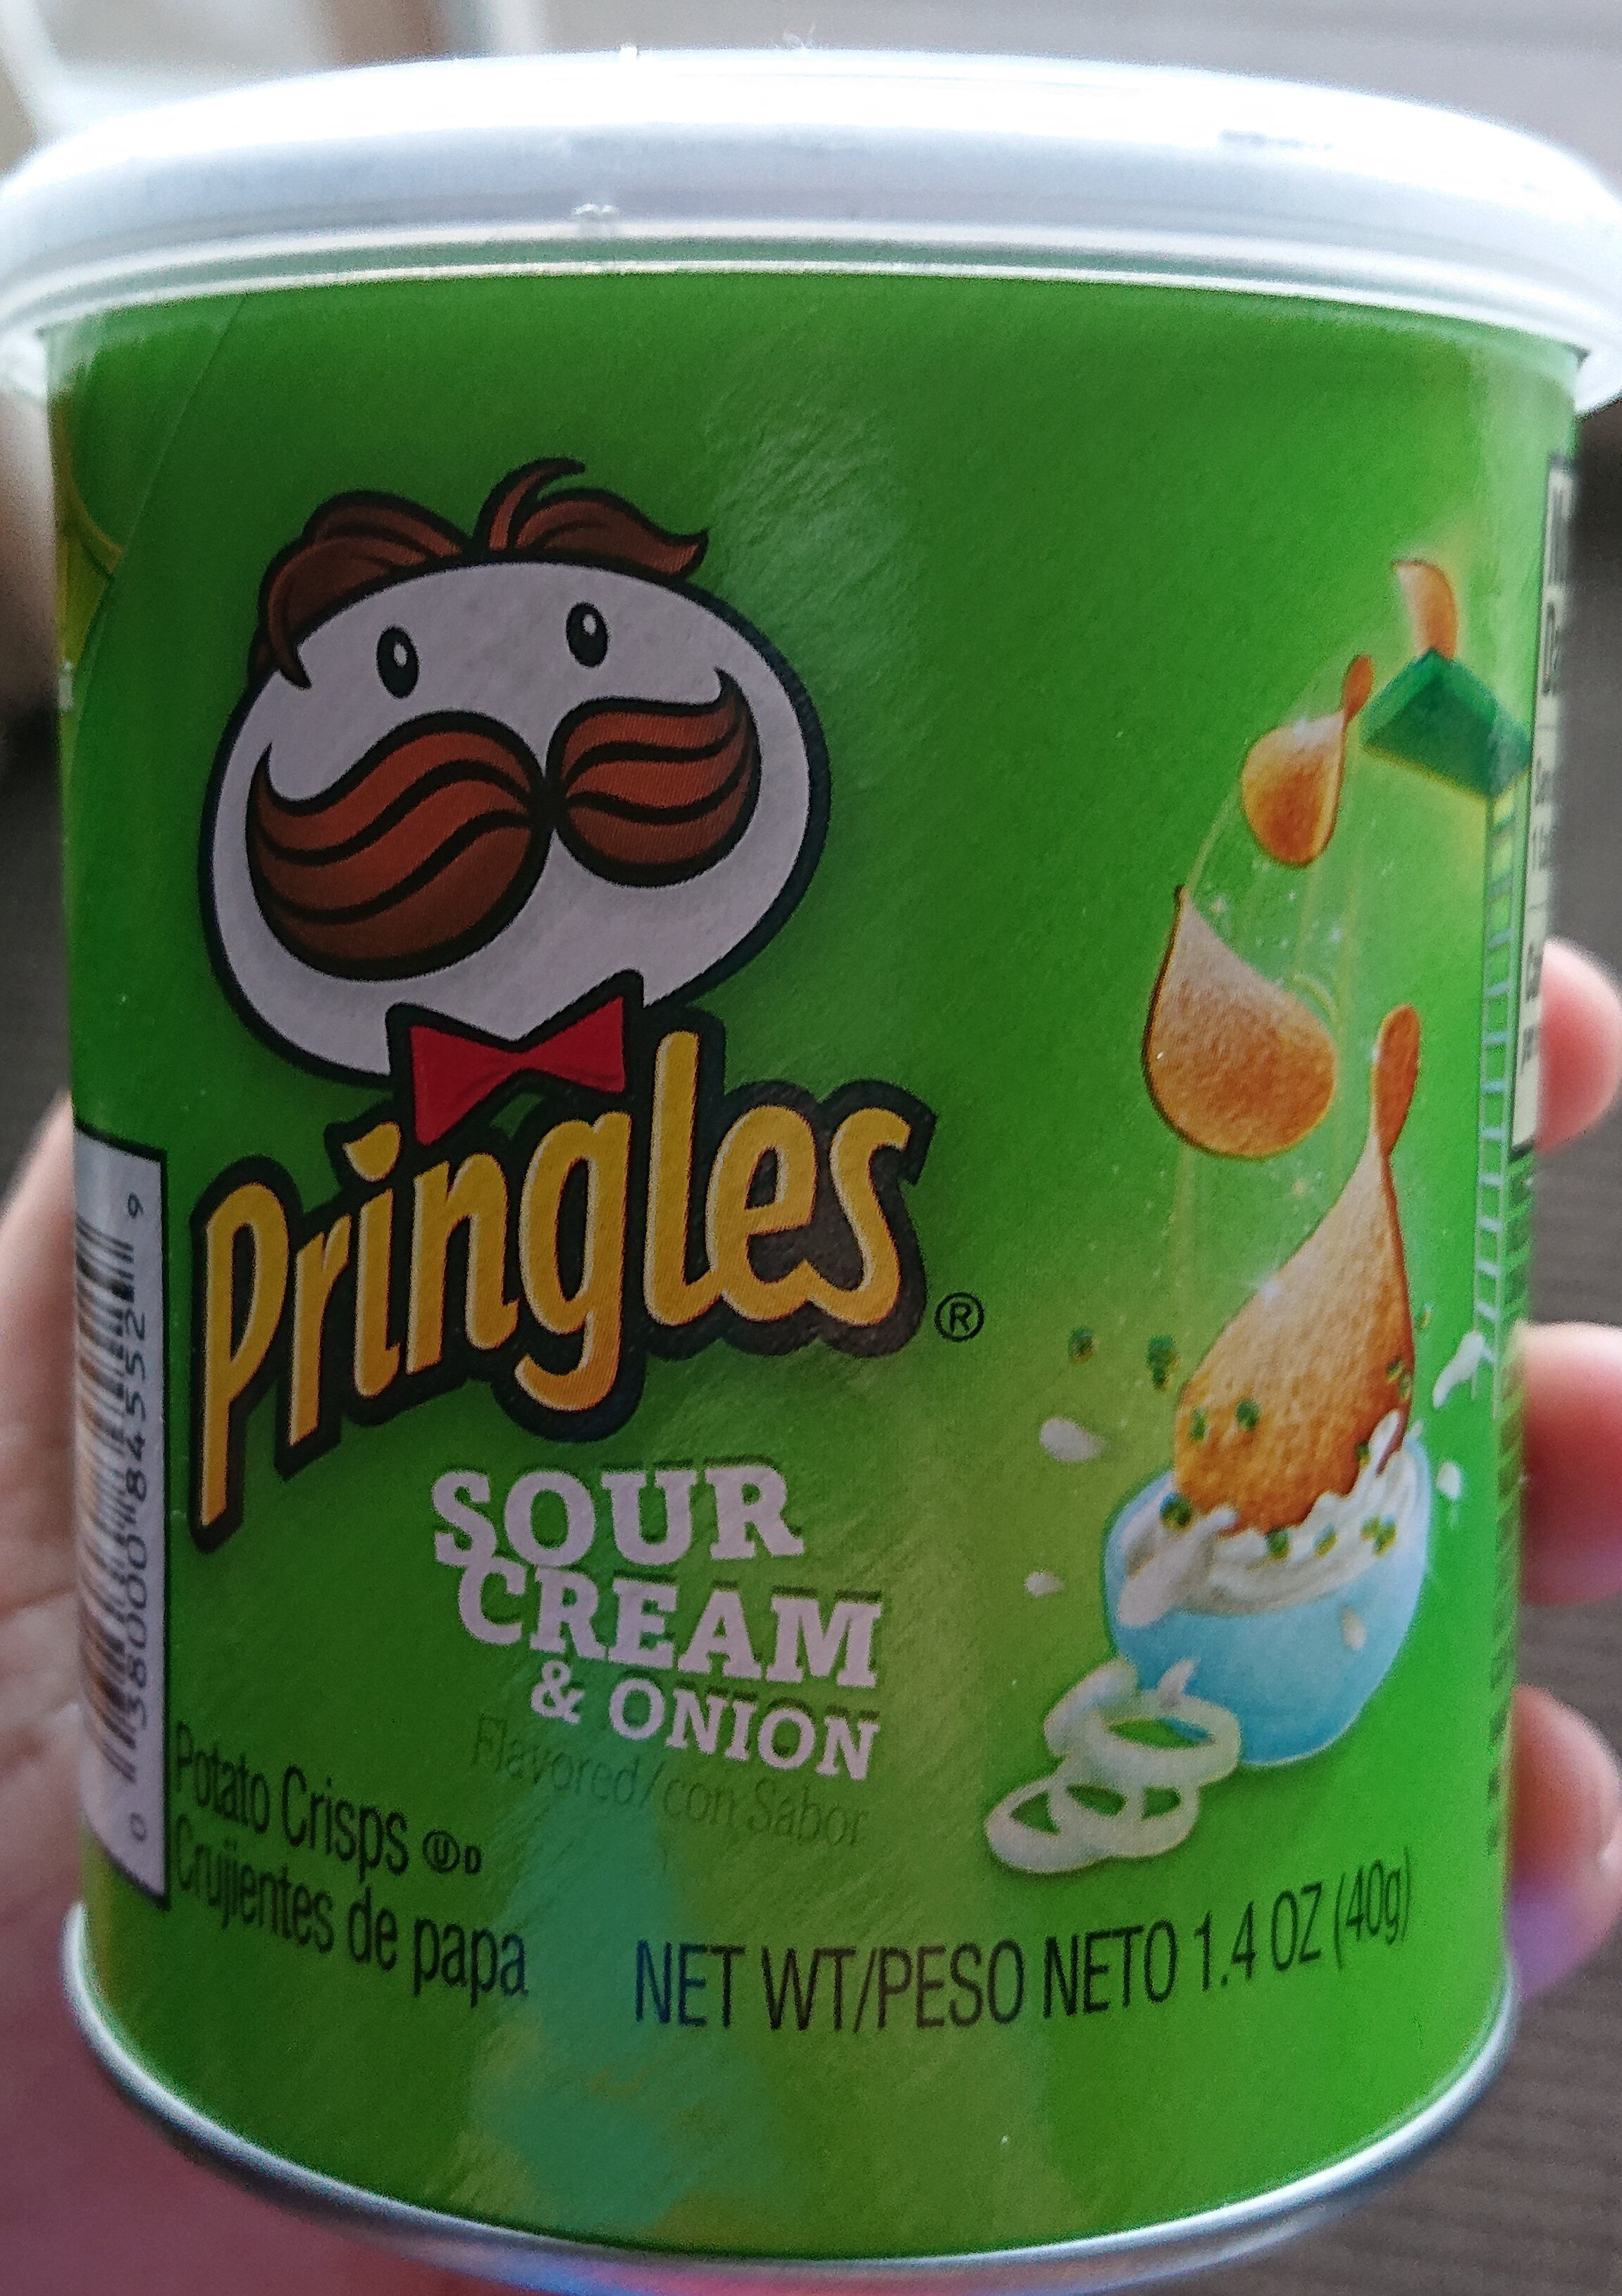 Sour cream & onion potato crisps, sour cream & onion - Producto - es